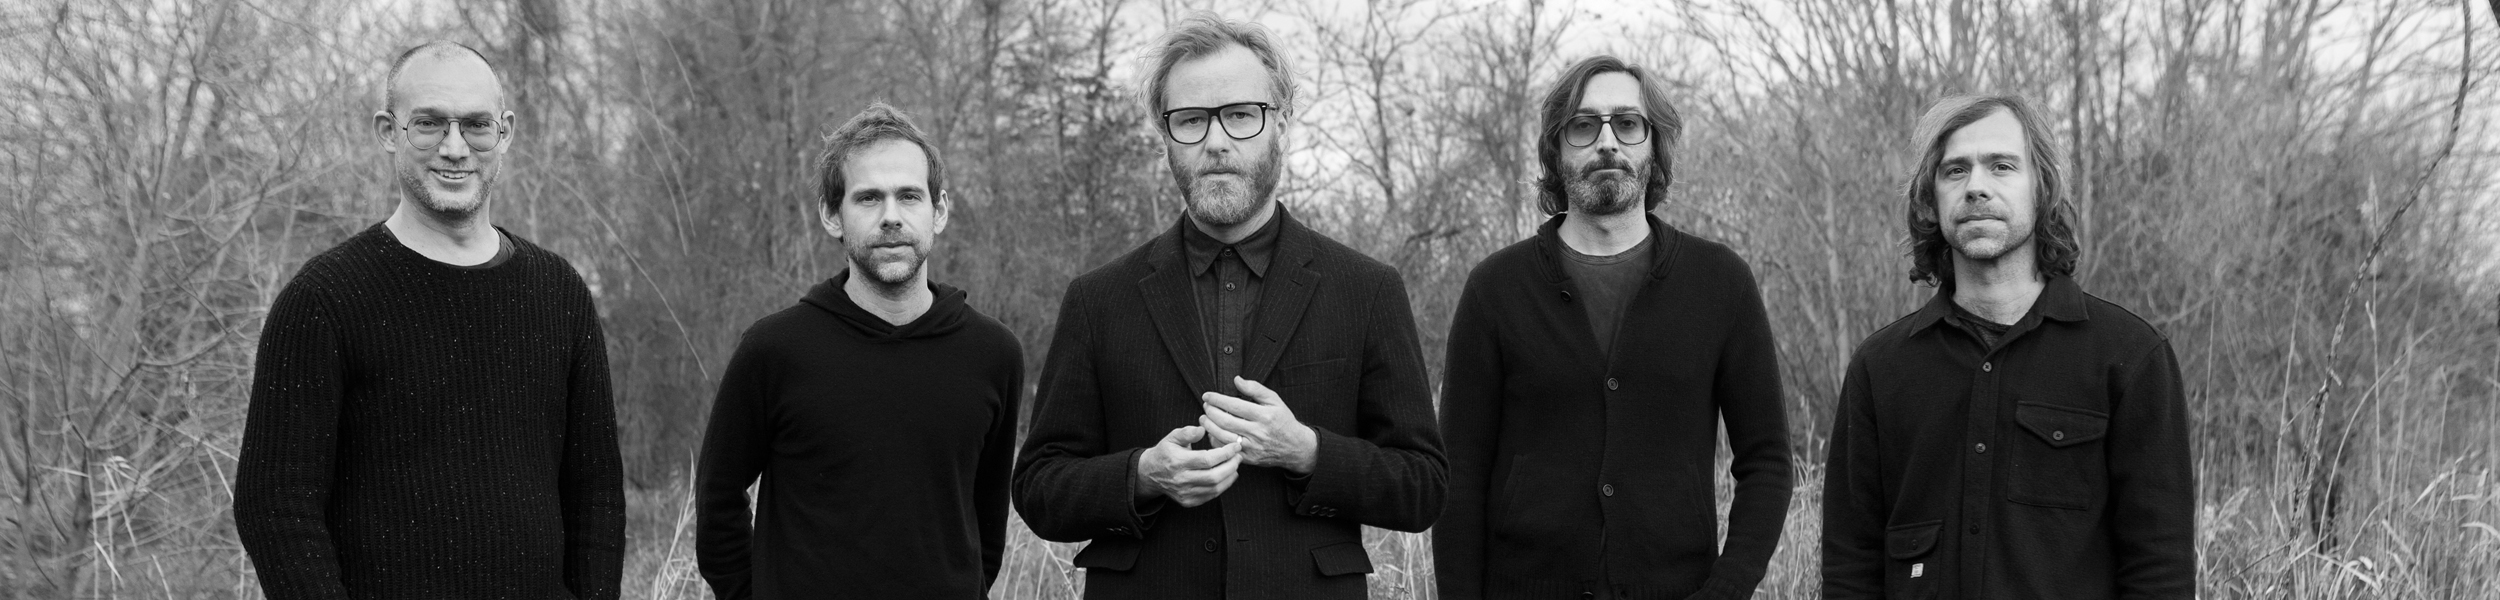 The National - New Album Track 'Carin At The Liquor Store'